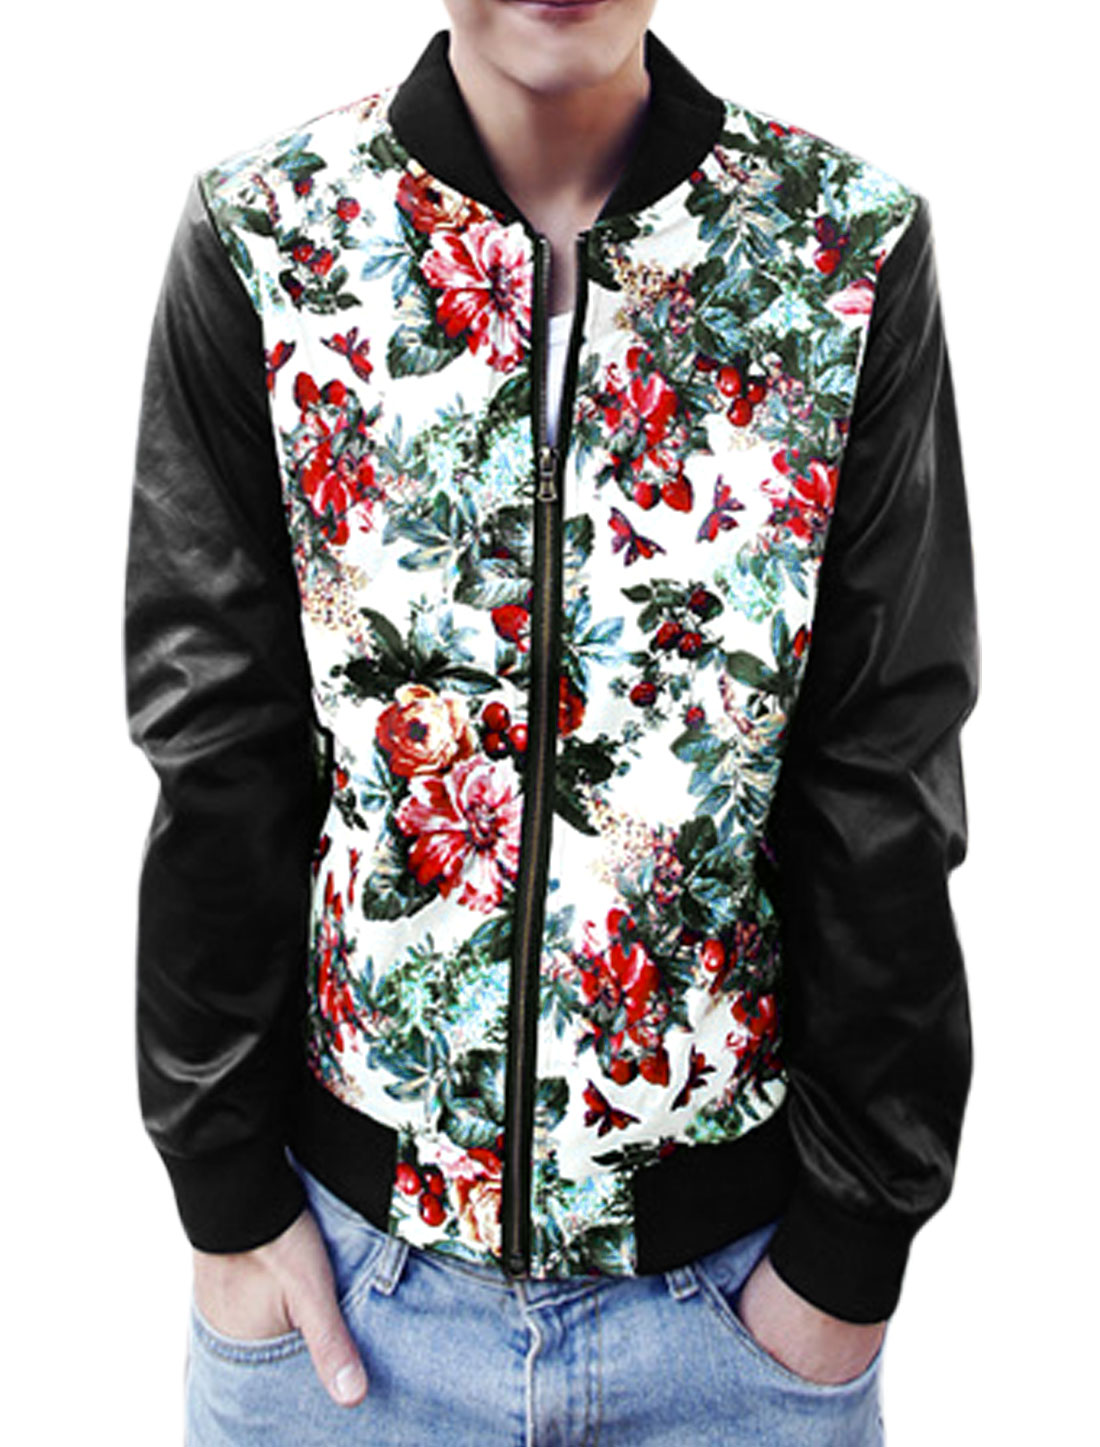 Men Floral Prints Zip Up Slant Pockets Imitation Leather Jacket Multicolor M